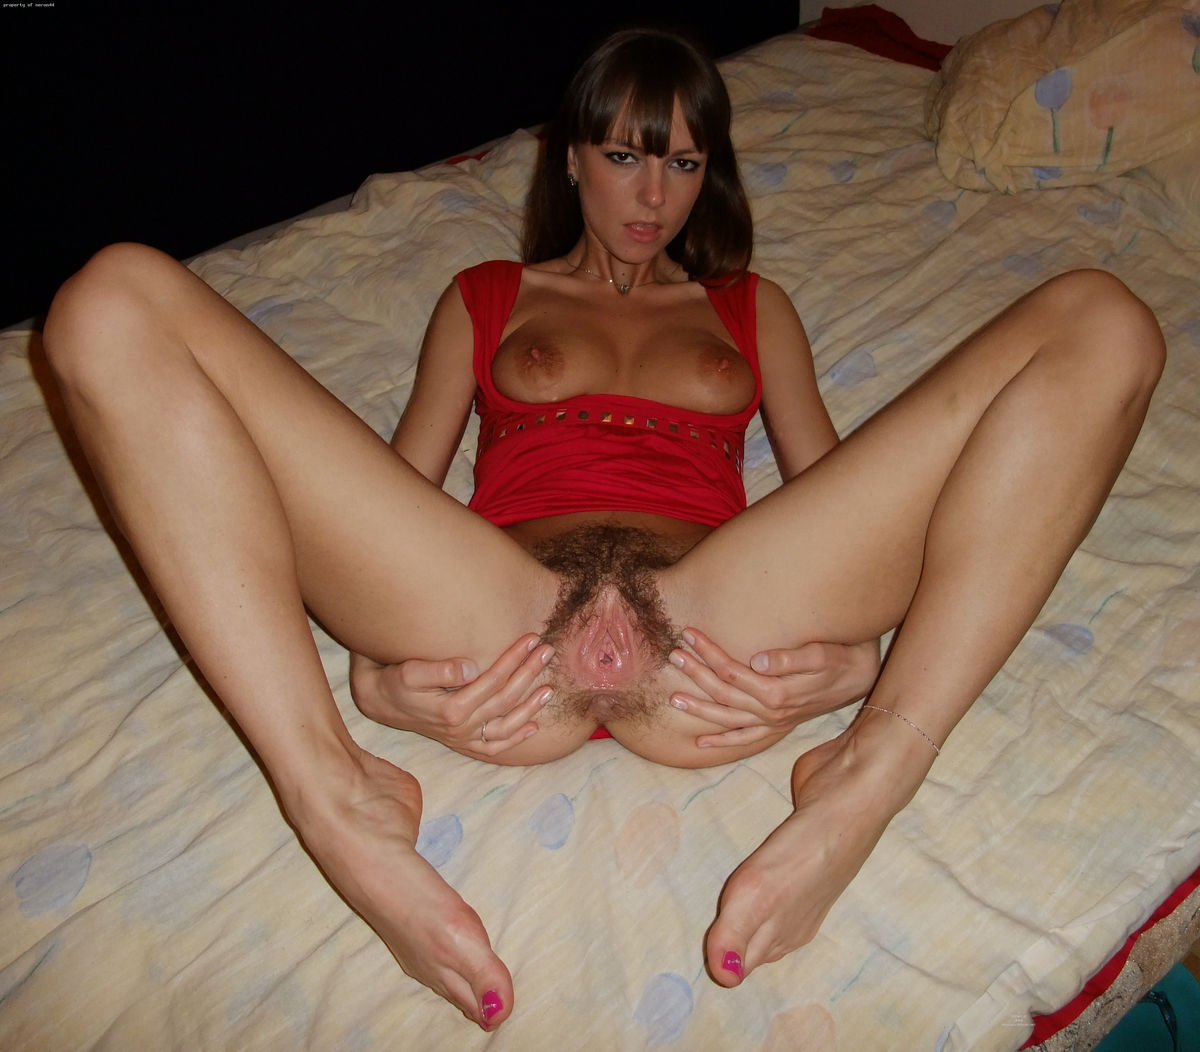 variant Certainly. join slutload blonde first double penetration advise you visit